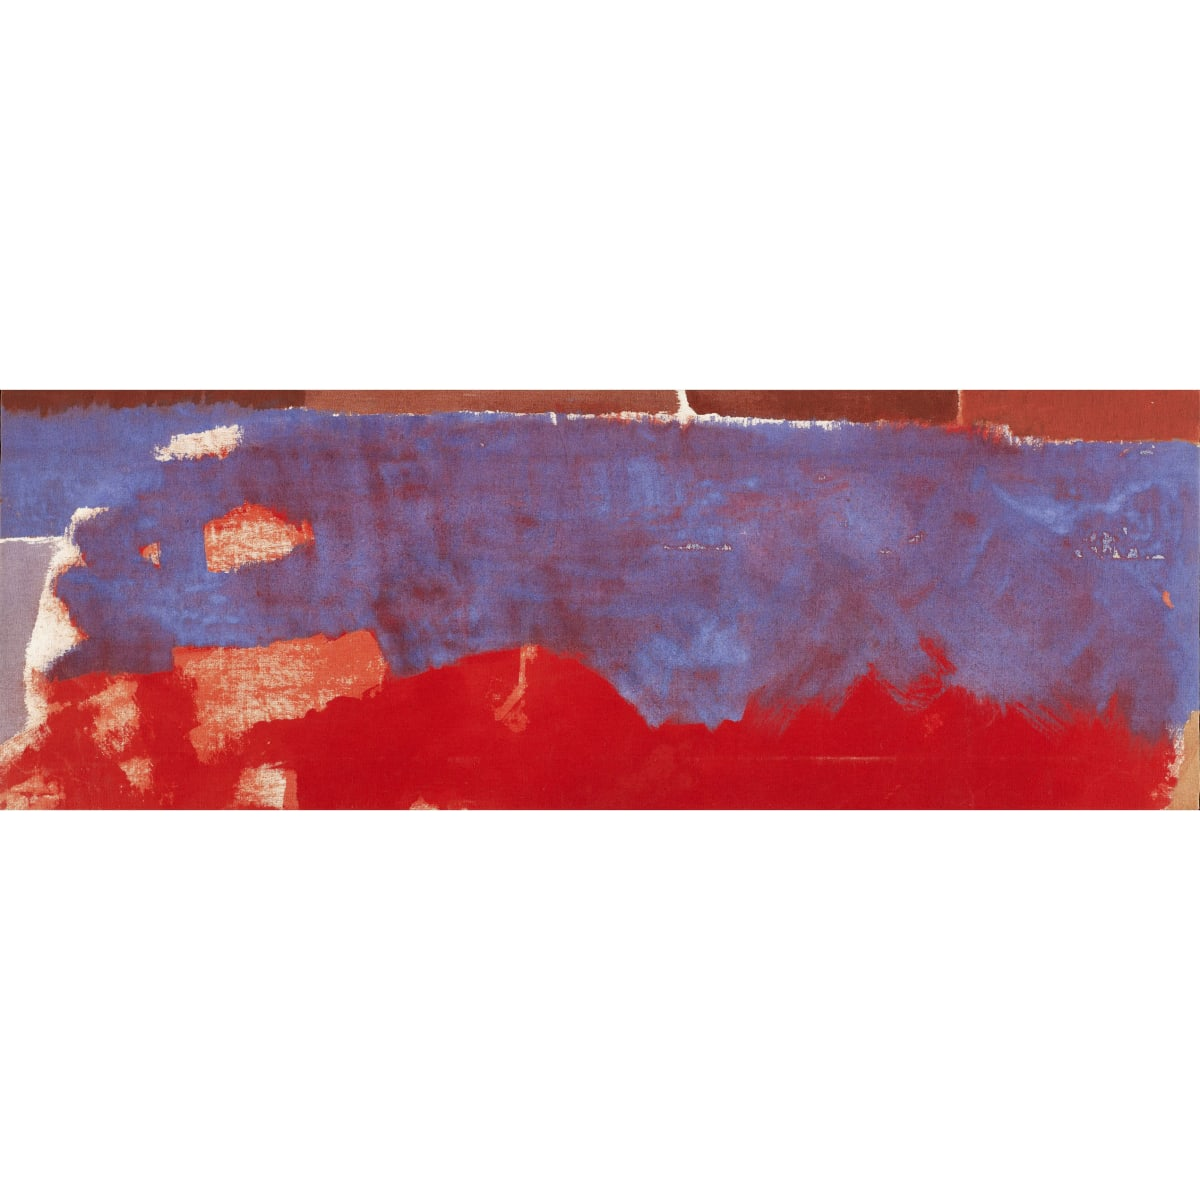 Talbert McLean Blue Ness signed and inscribed with titled verso oil on canvas 37 x 13 inches